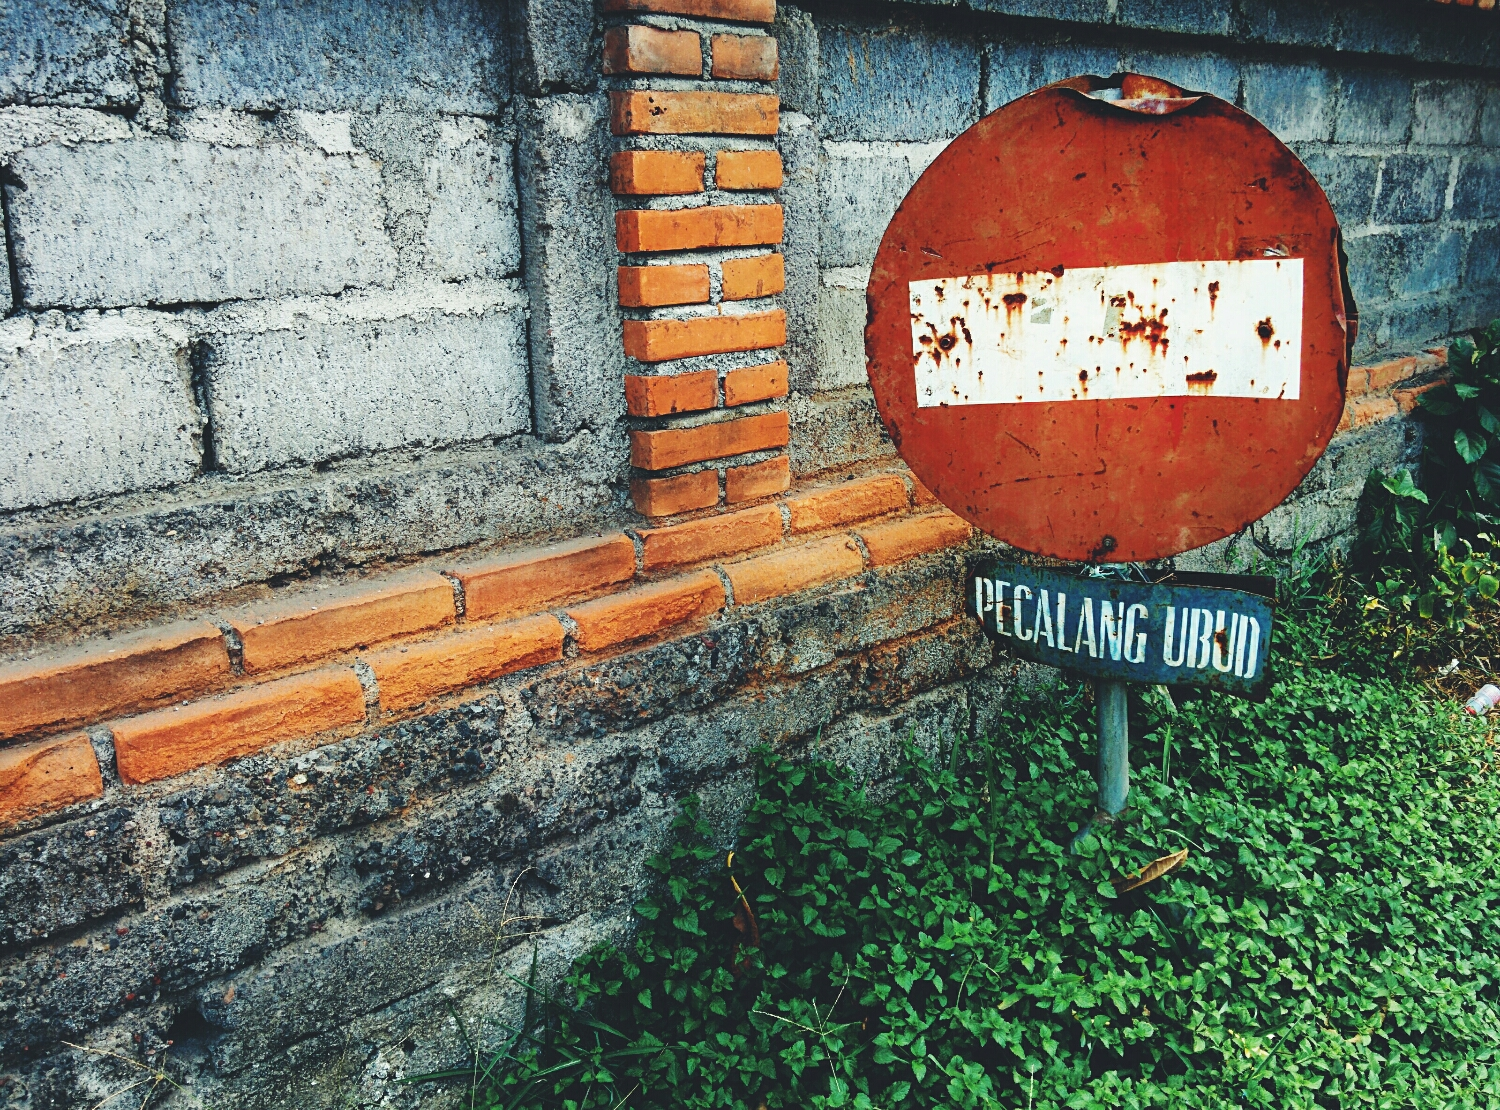 Stop sign on Jalan Suaweta, Ubud, Bali, telling me to stop what I'm doing, think things over, and restart.